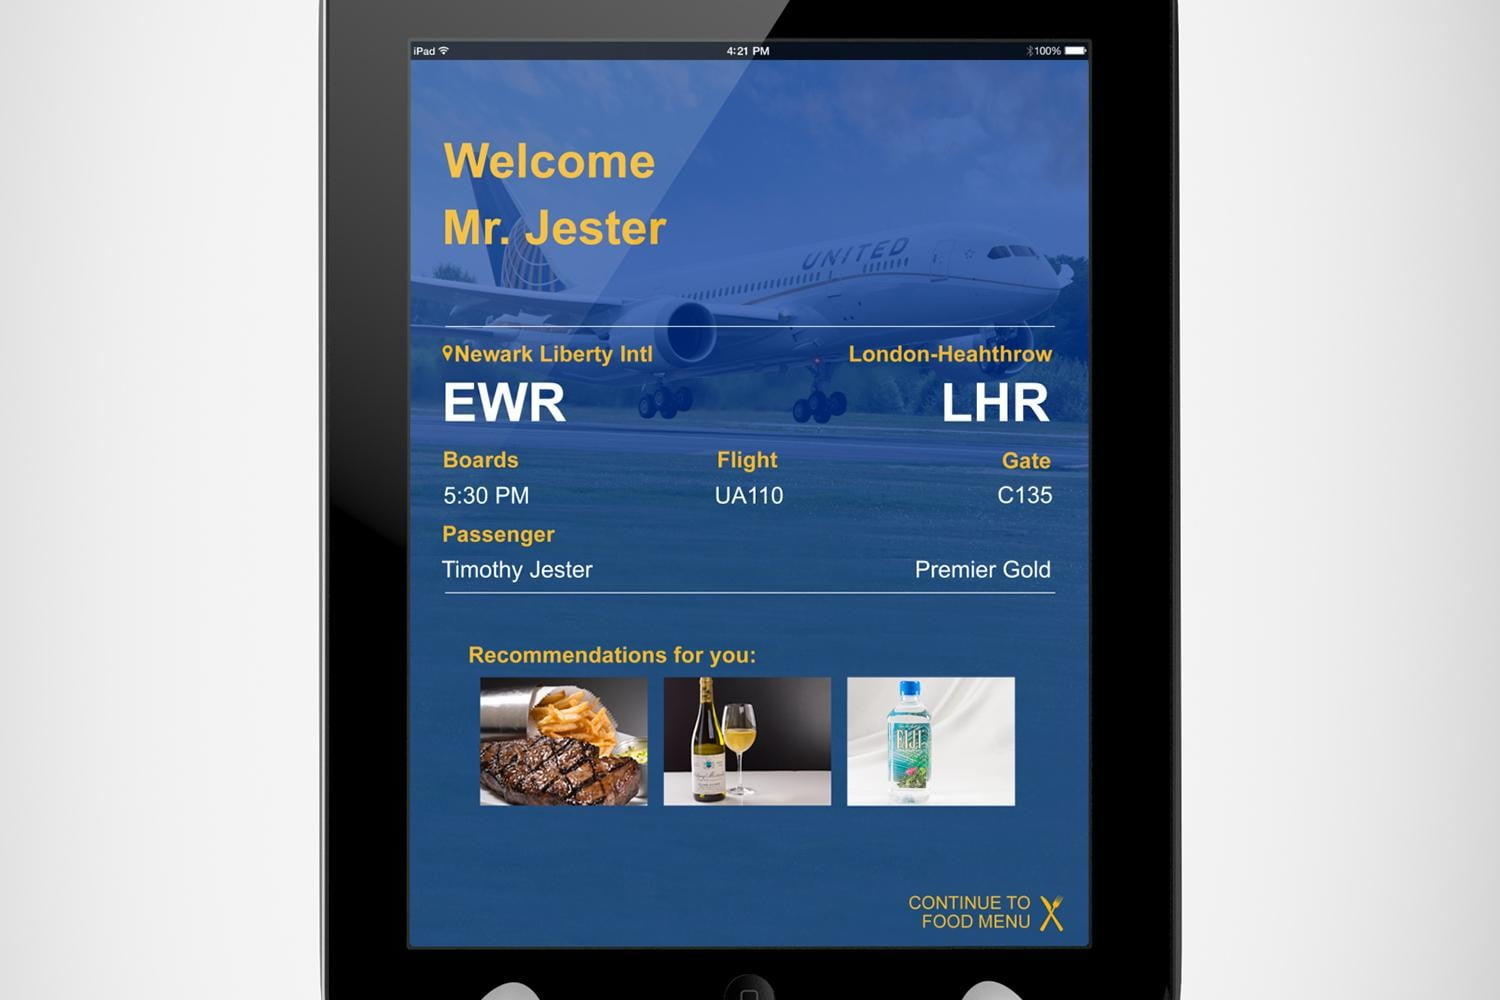 ipads are replacing waiters in airport restaurants personalized welcome screen